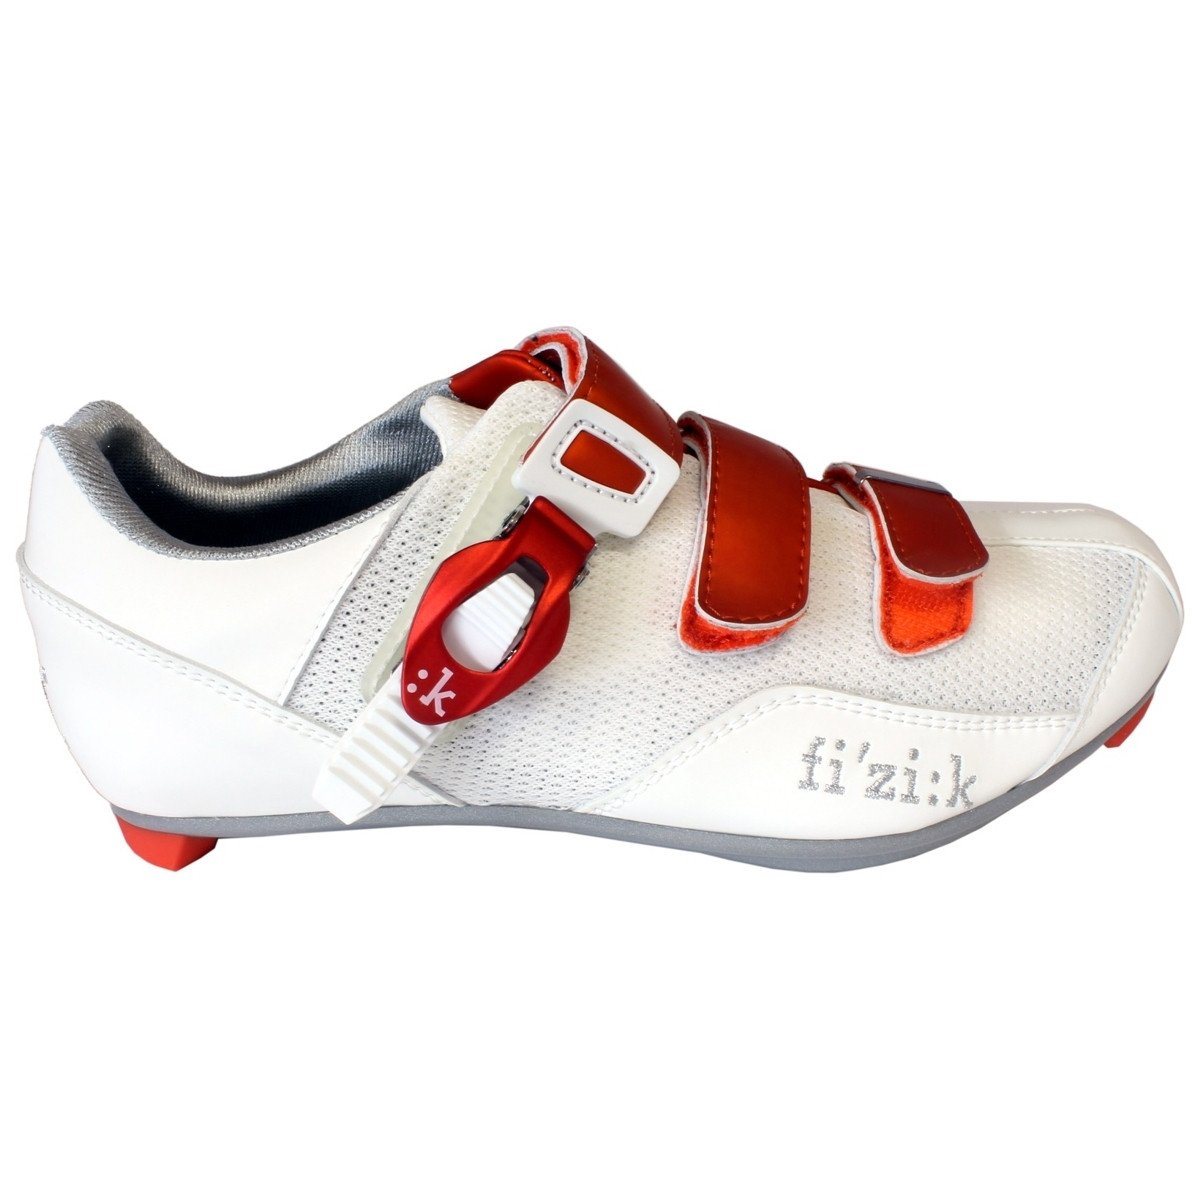 Fizik Womens R5 Shoe 39 White/Orange CLOSEOUT - Cycles Galleria Melbourne